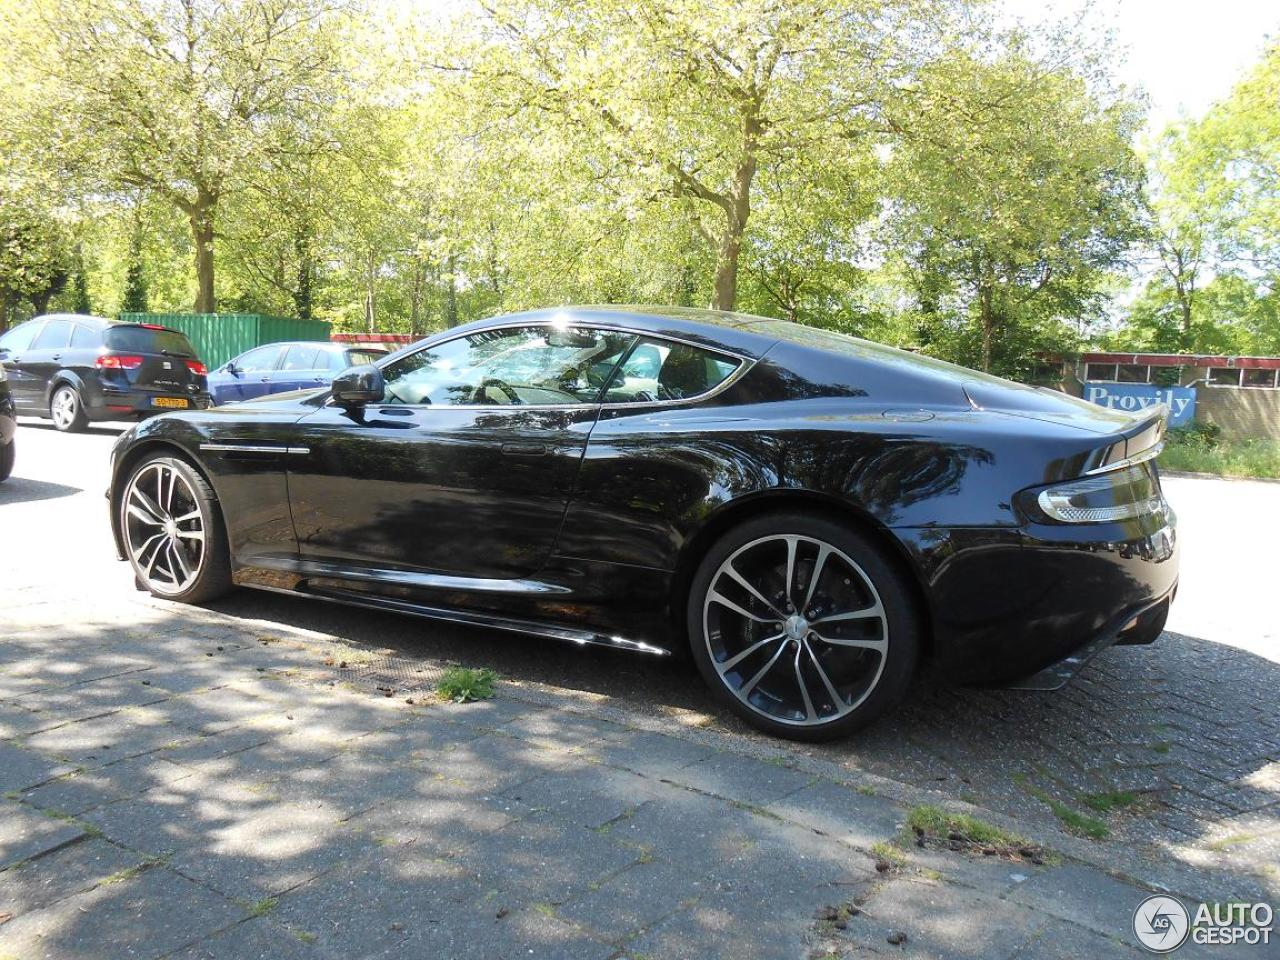 Aston Martin Dbs Carbon Black Martin Dbs Carbon Black